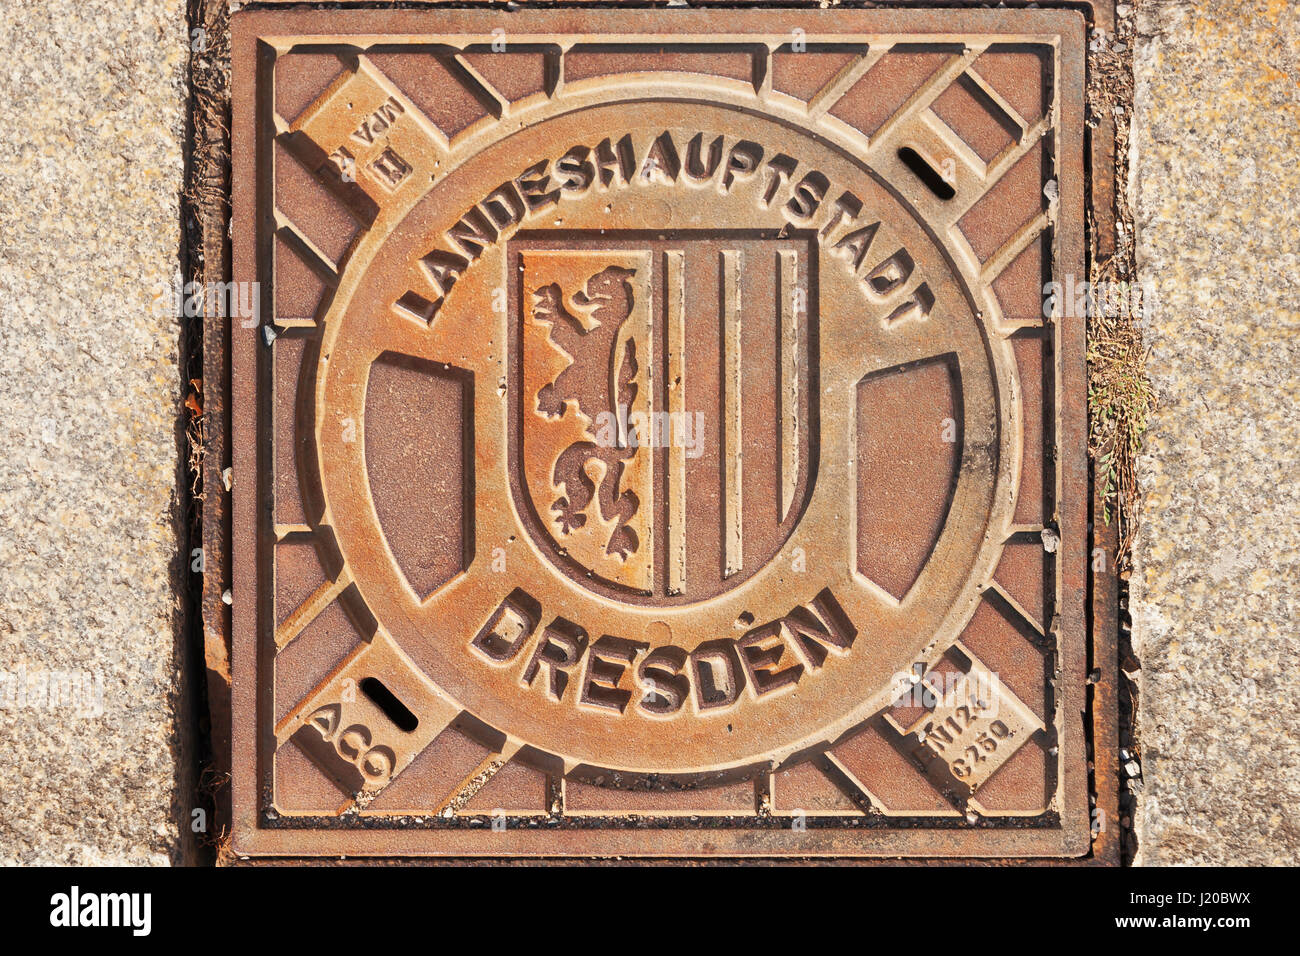 Manhole cover in Dresden with the Coat of arms of Dresden, Saxony, Germany, Europe - Stock Image